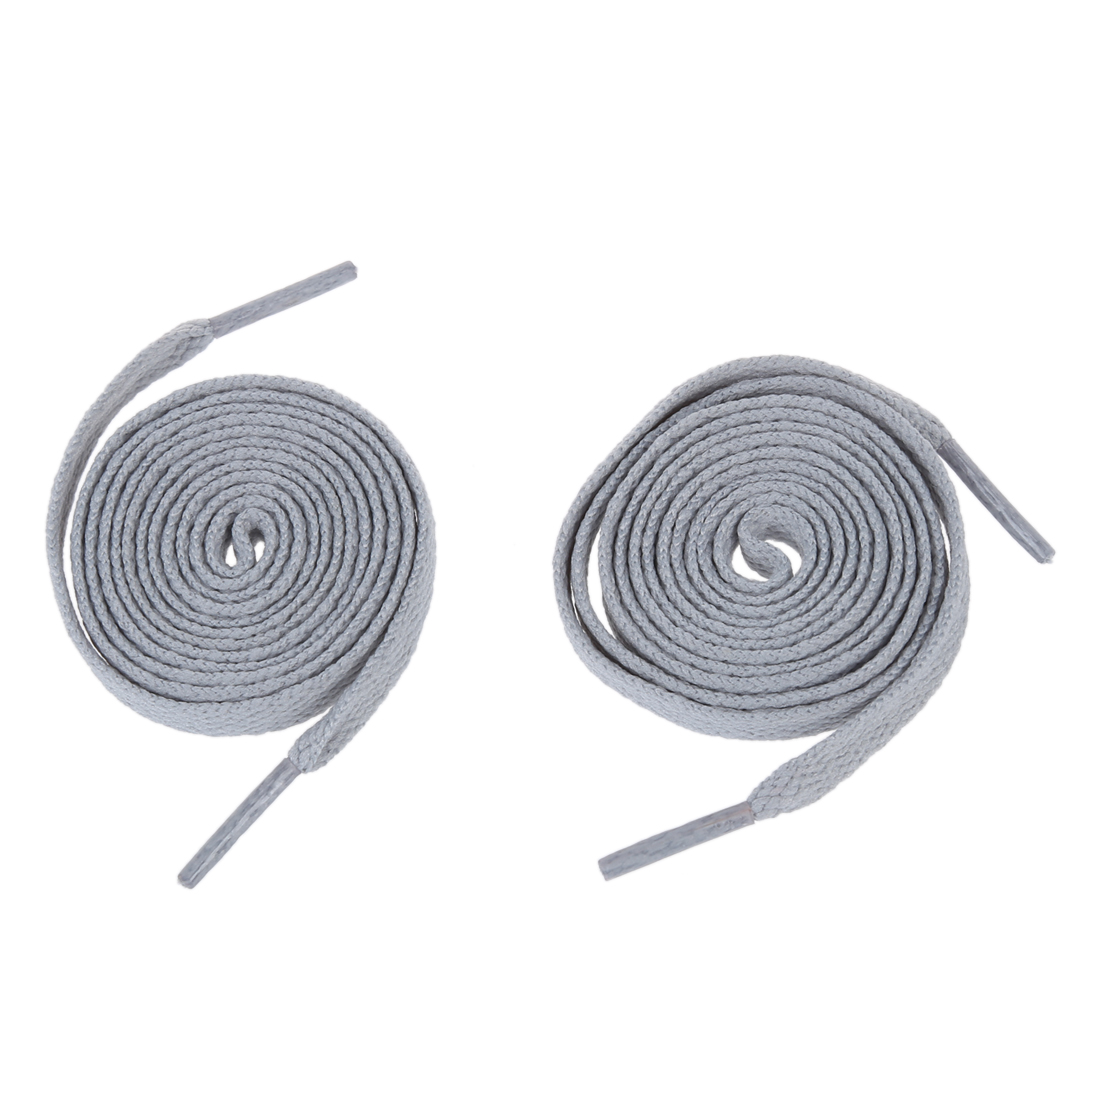 2018 Hot StyleNew 2pcs Trainers Plastic Tips 52.4 Long Grey Flat Wide Shoe Laces Strings vsen pair sneakers trainers flat shoe laces 0 4 wide strings red